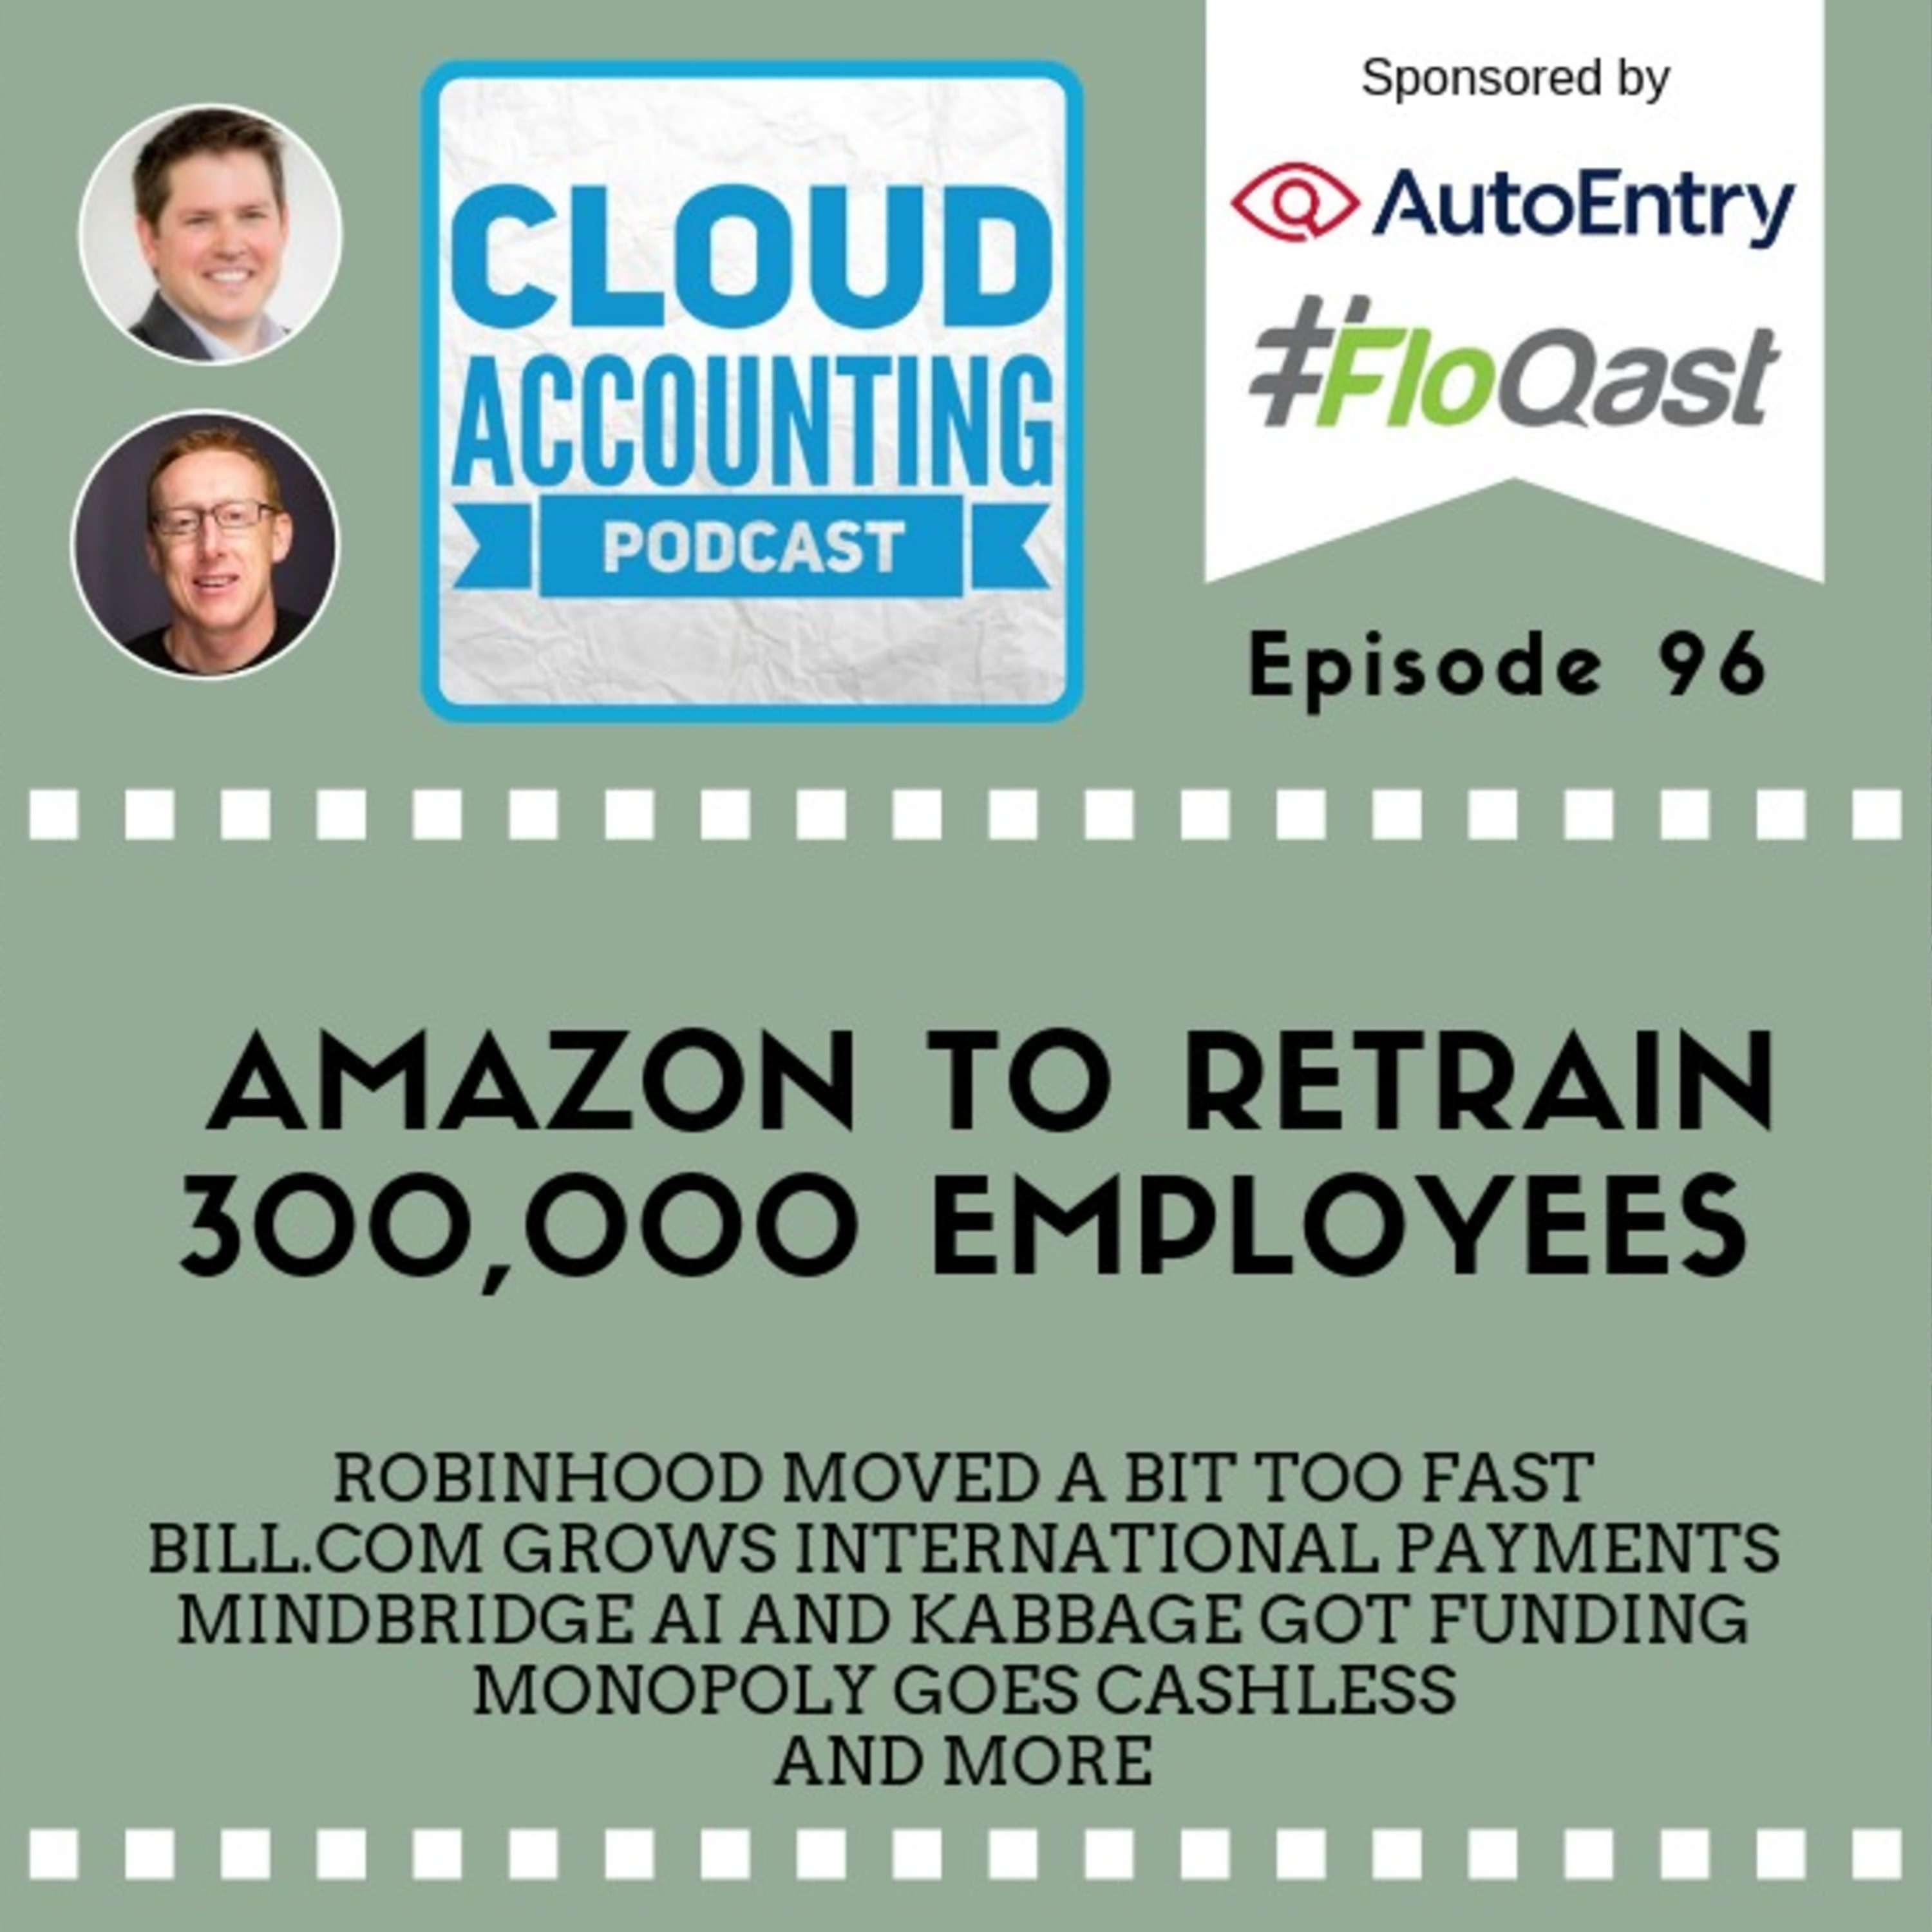 Why Amazon — and accounting firms — have no choice but to retrain their workers